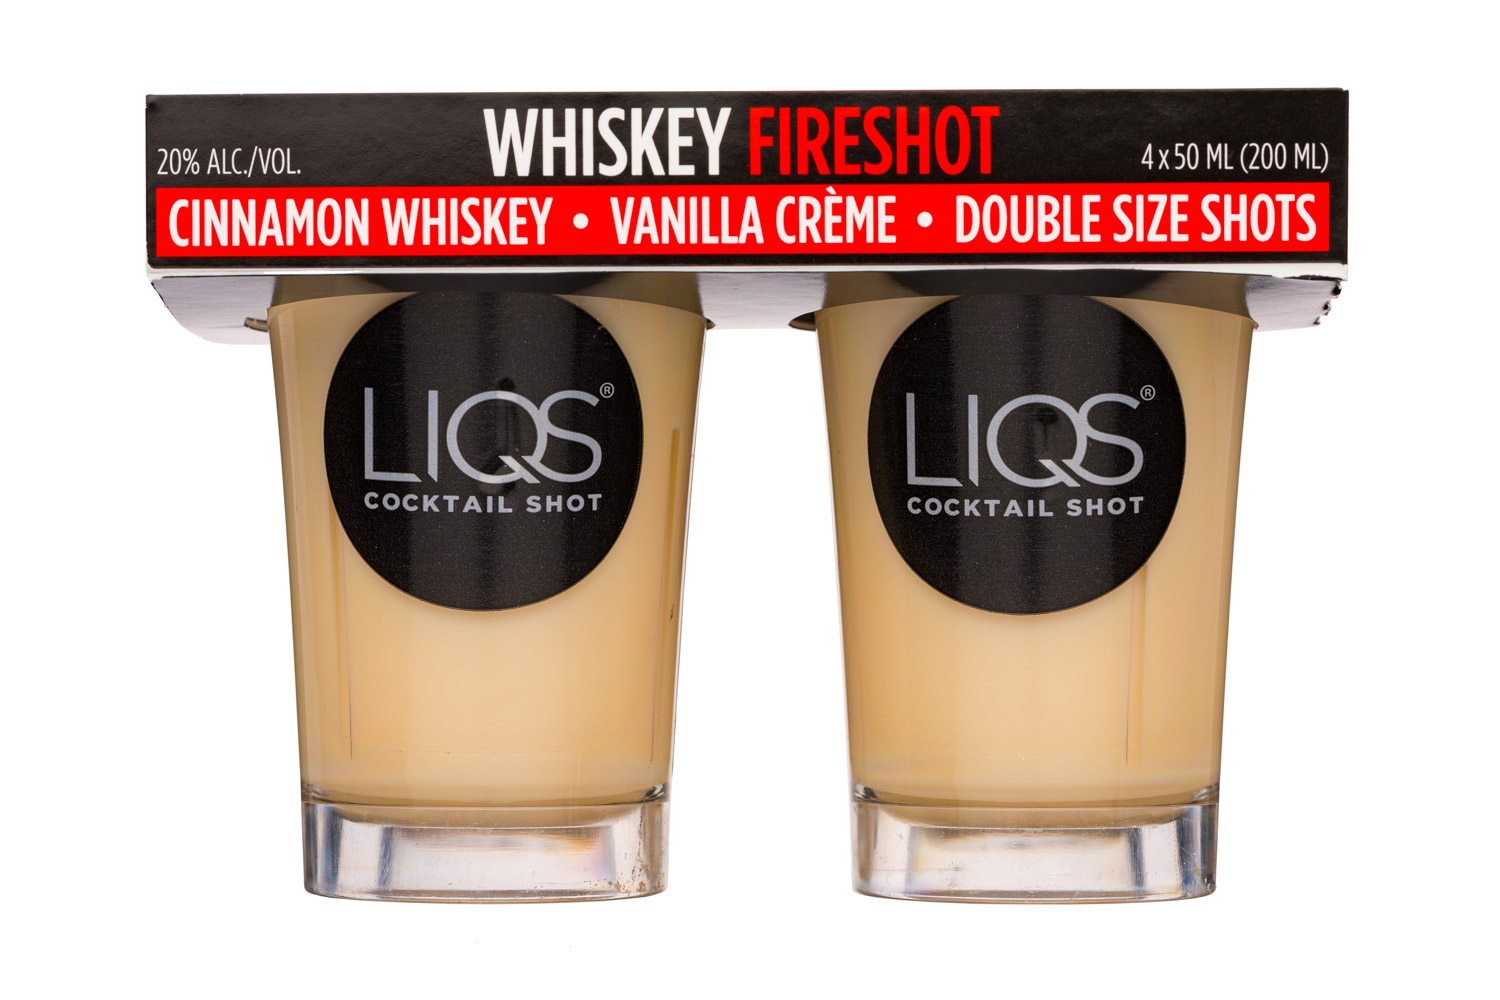 Whiskey Fireshot Shots